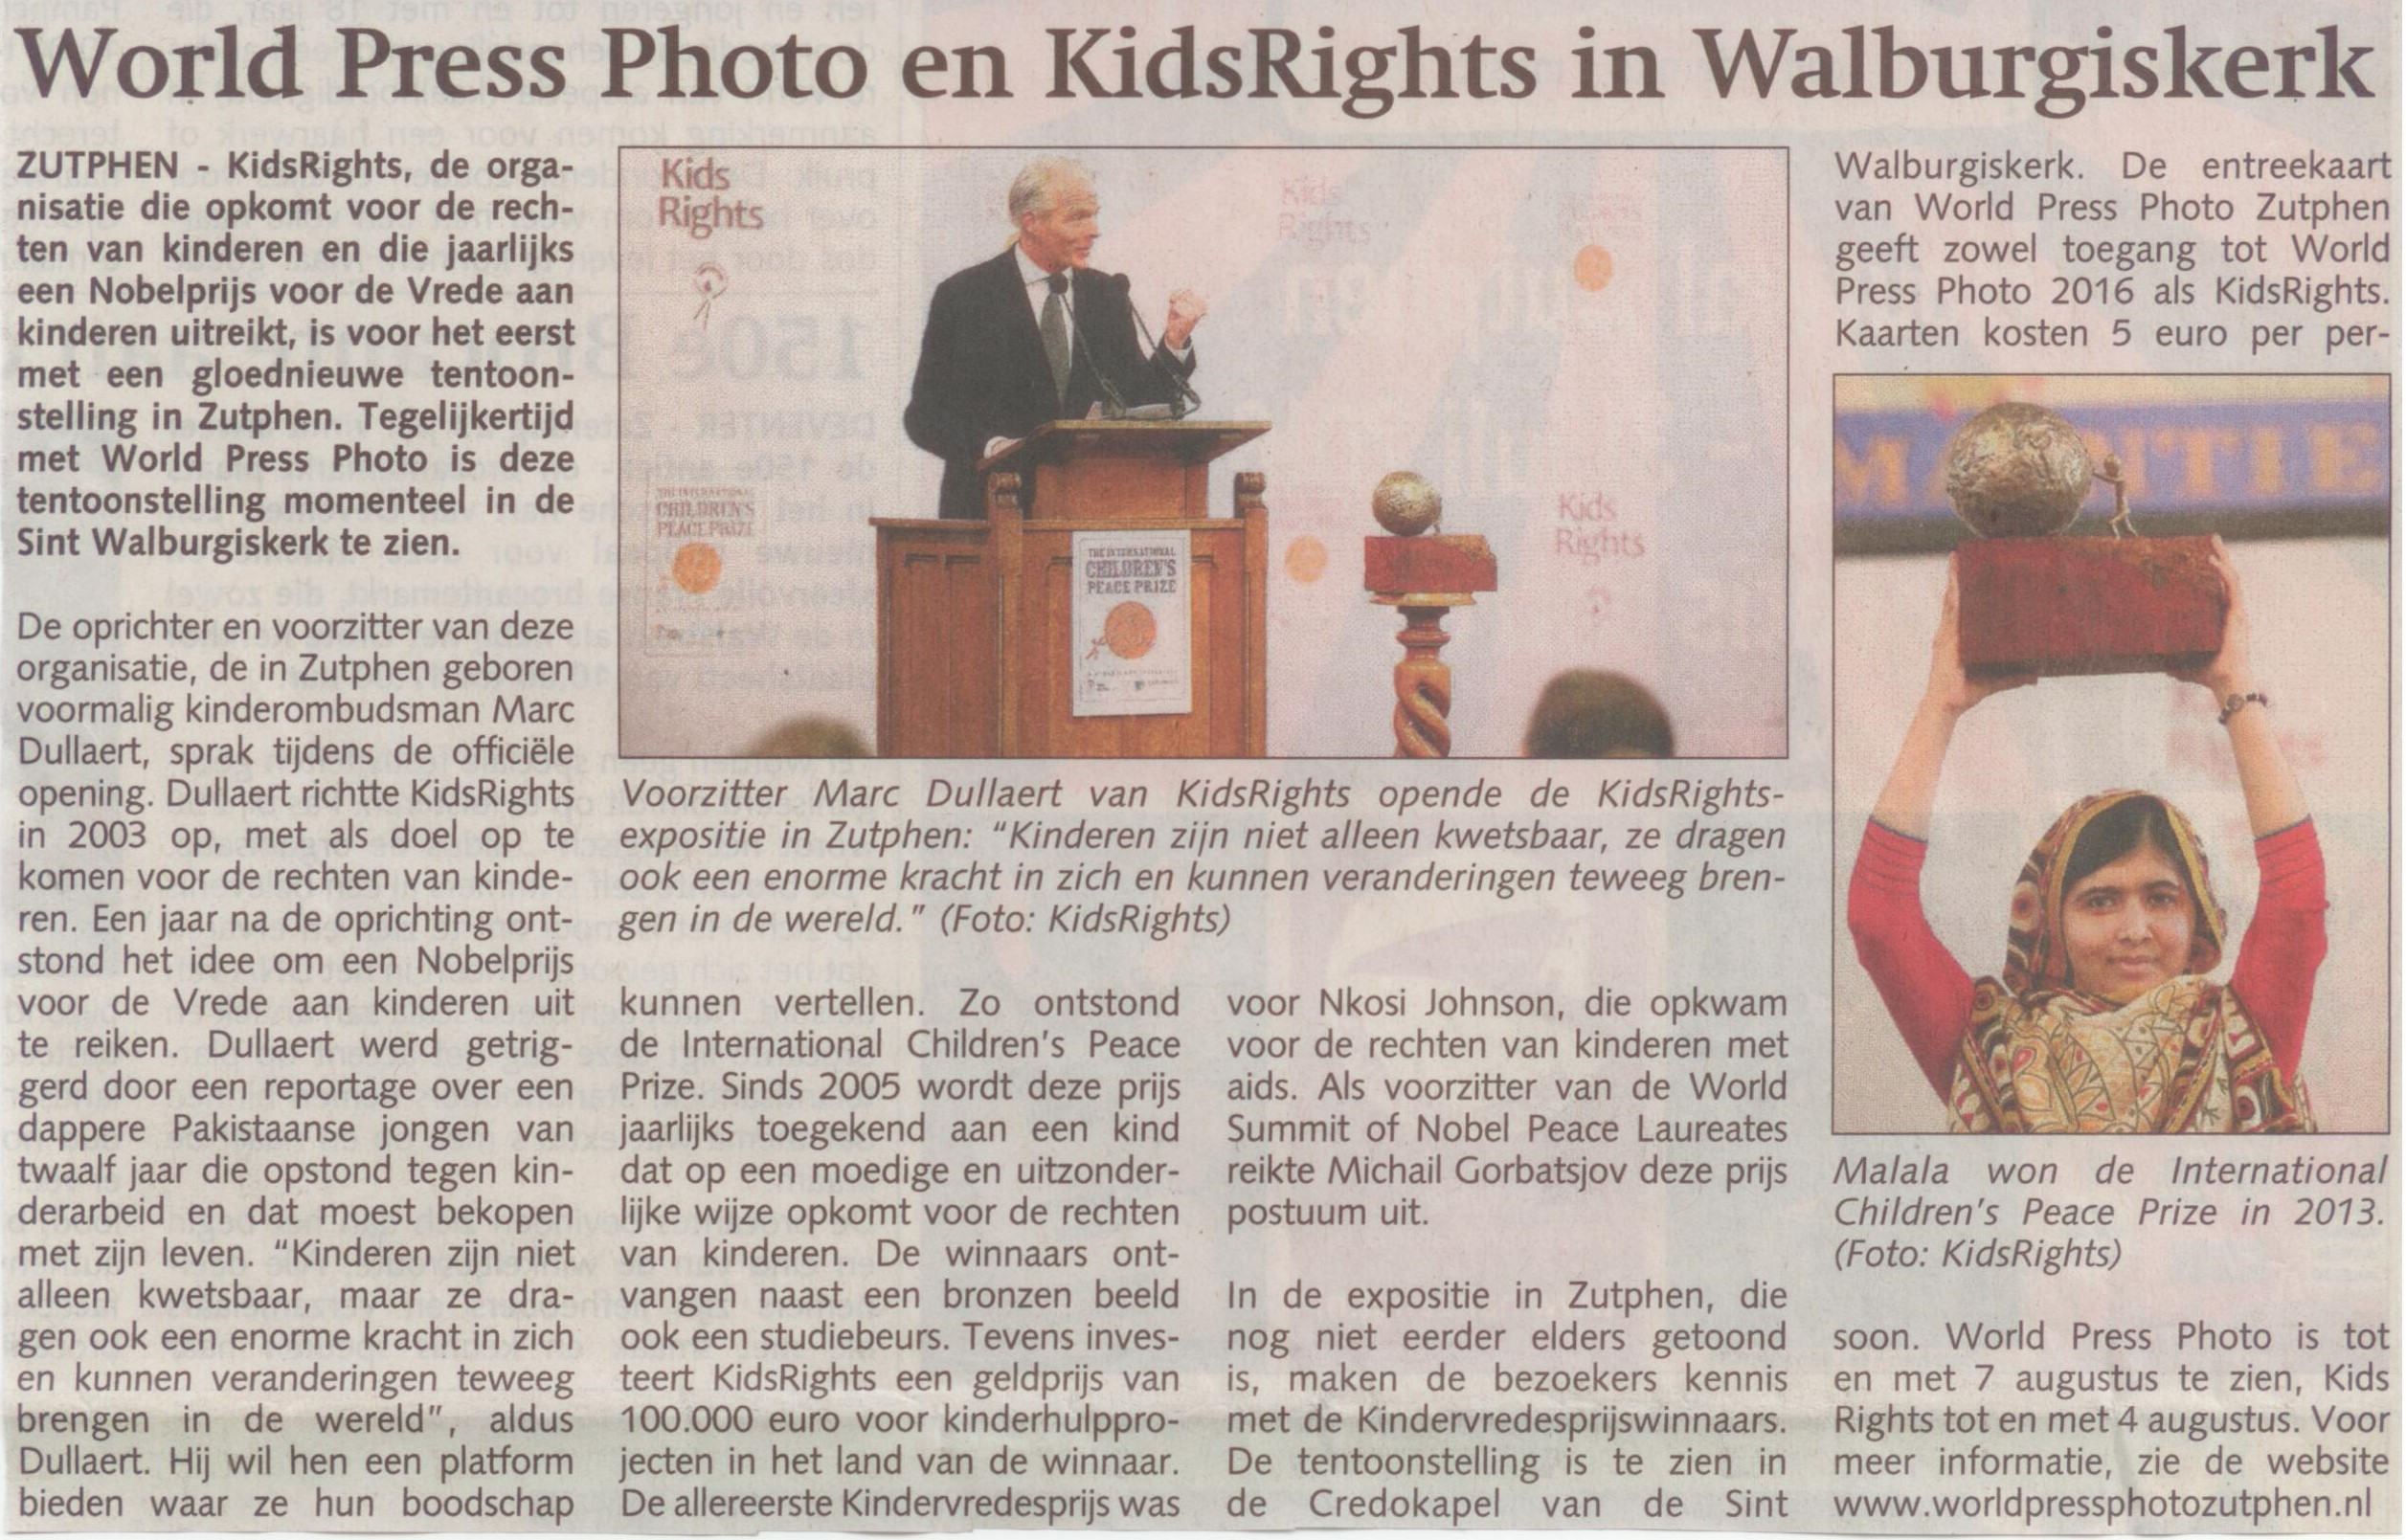 160720 Stedendriehoek World Press Photo en KidsRights in Walburgiskerk